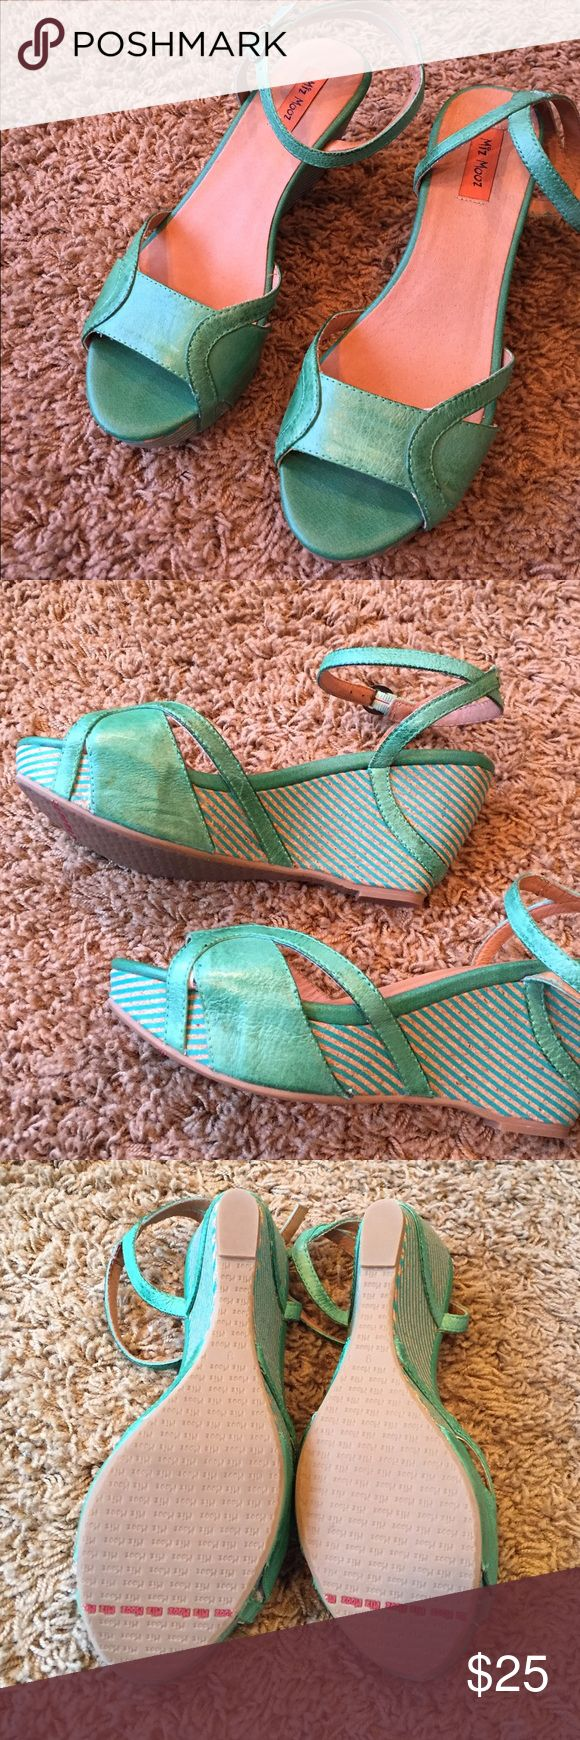 Miz Mooz Emerald green wedges Approx. Heel height: 3″ with 1″ platform (comparable to a 2″ heel). Adjustable strap with buckle closure. Miz Mooz Shoes Wedges